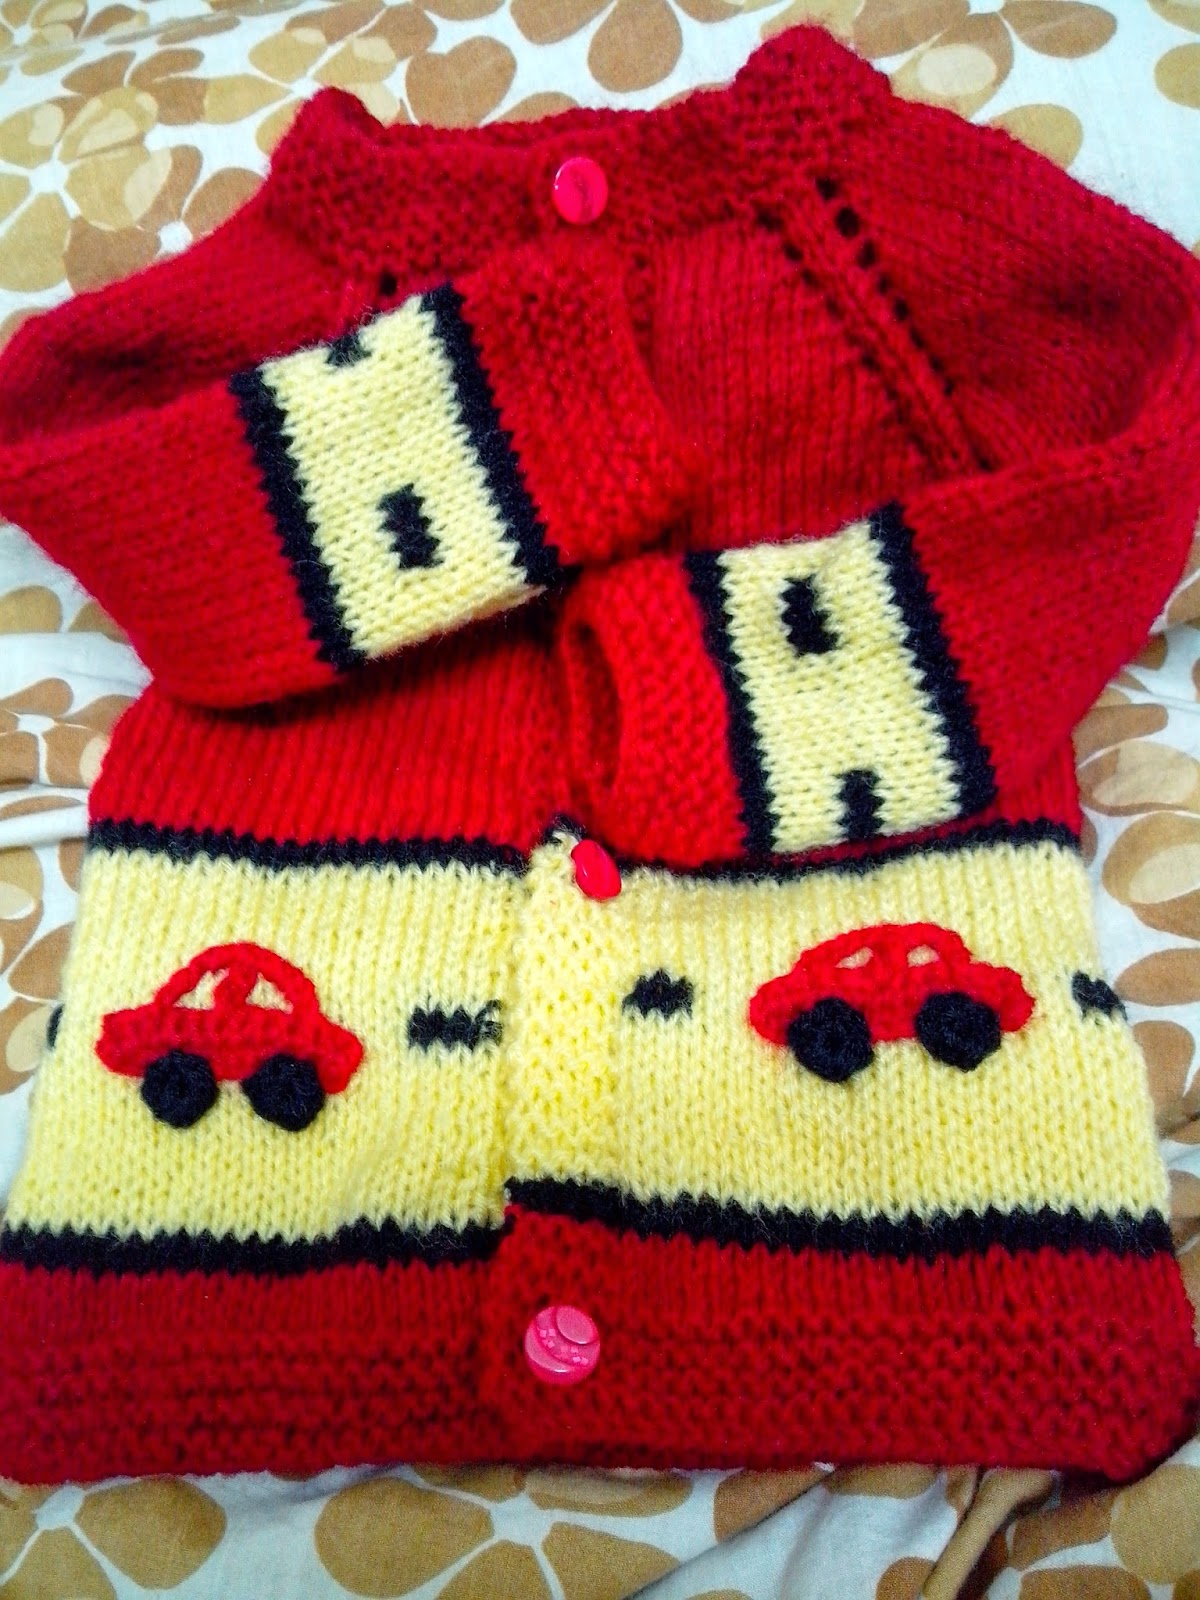 knitting pattern, red sweater, cars on a sweater